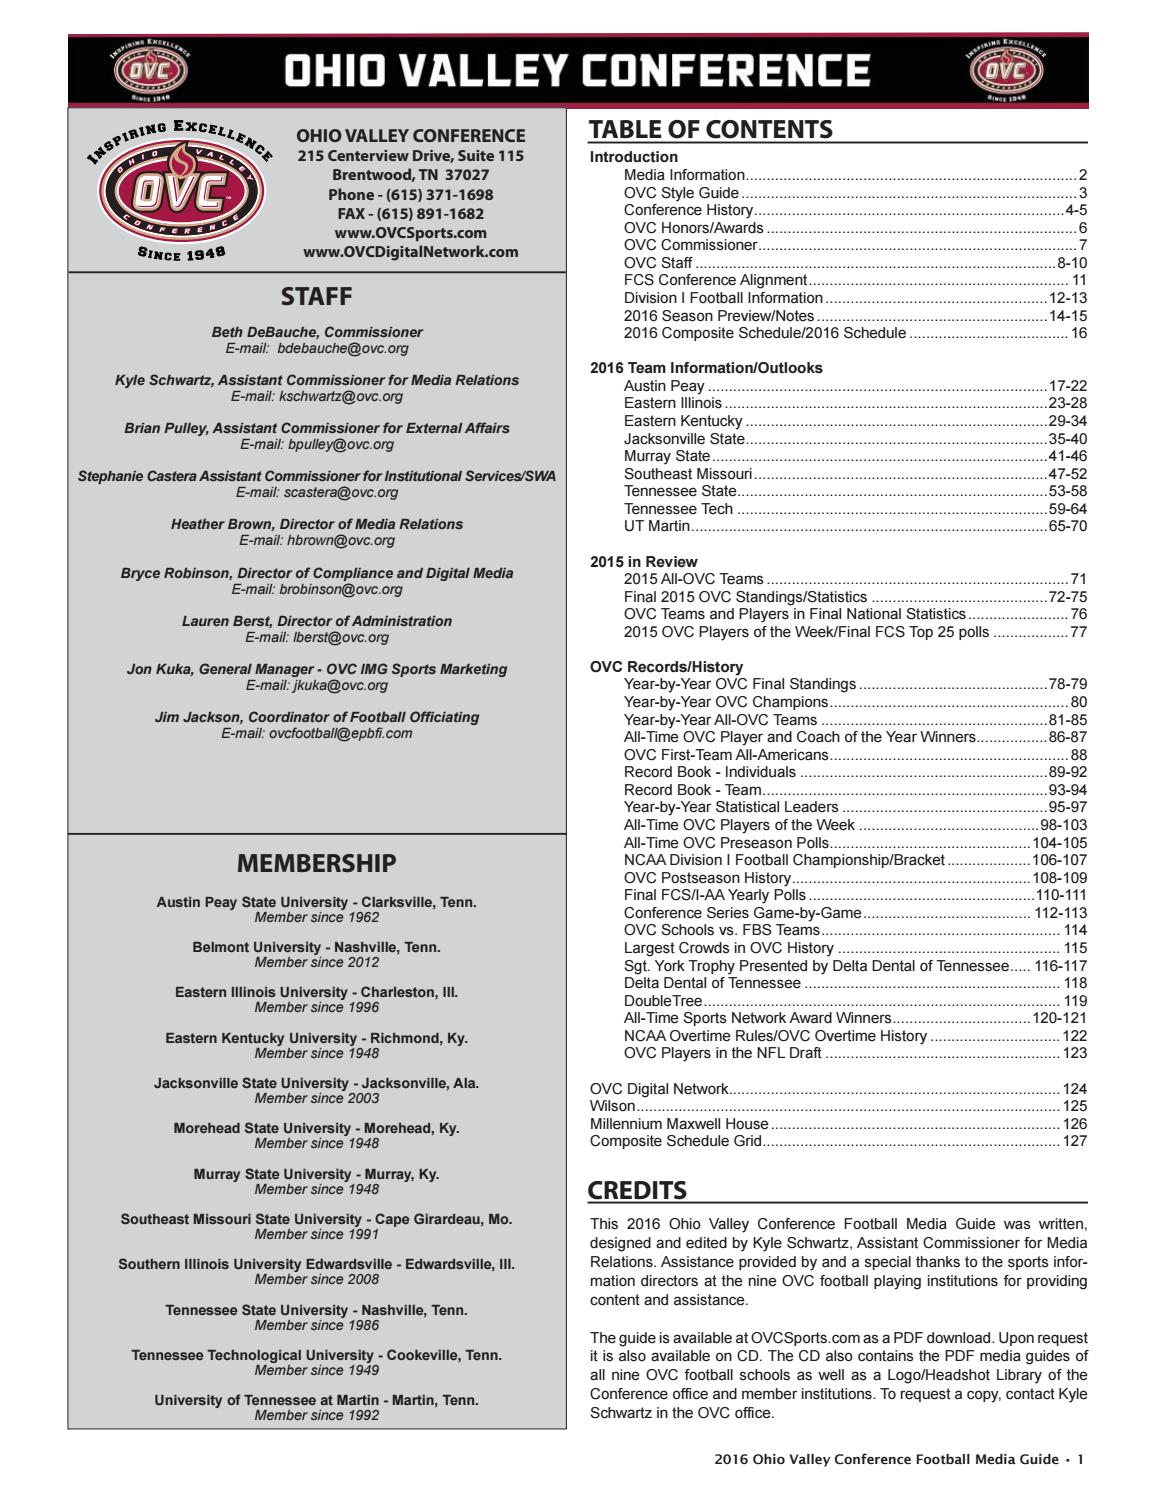 2016 Ohio Valley Conference Football Media Guide By Kyle Schwartz Prevost Bus Wiring Ac Fan Issuu